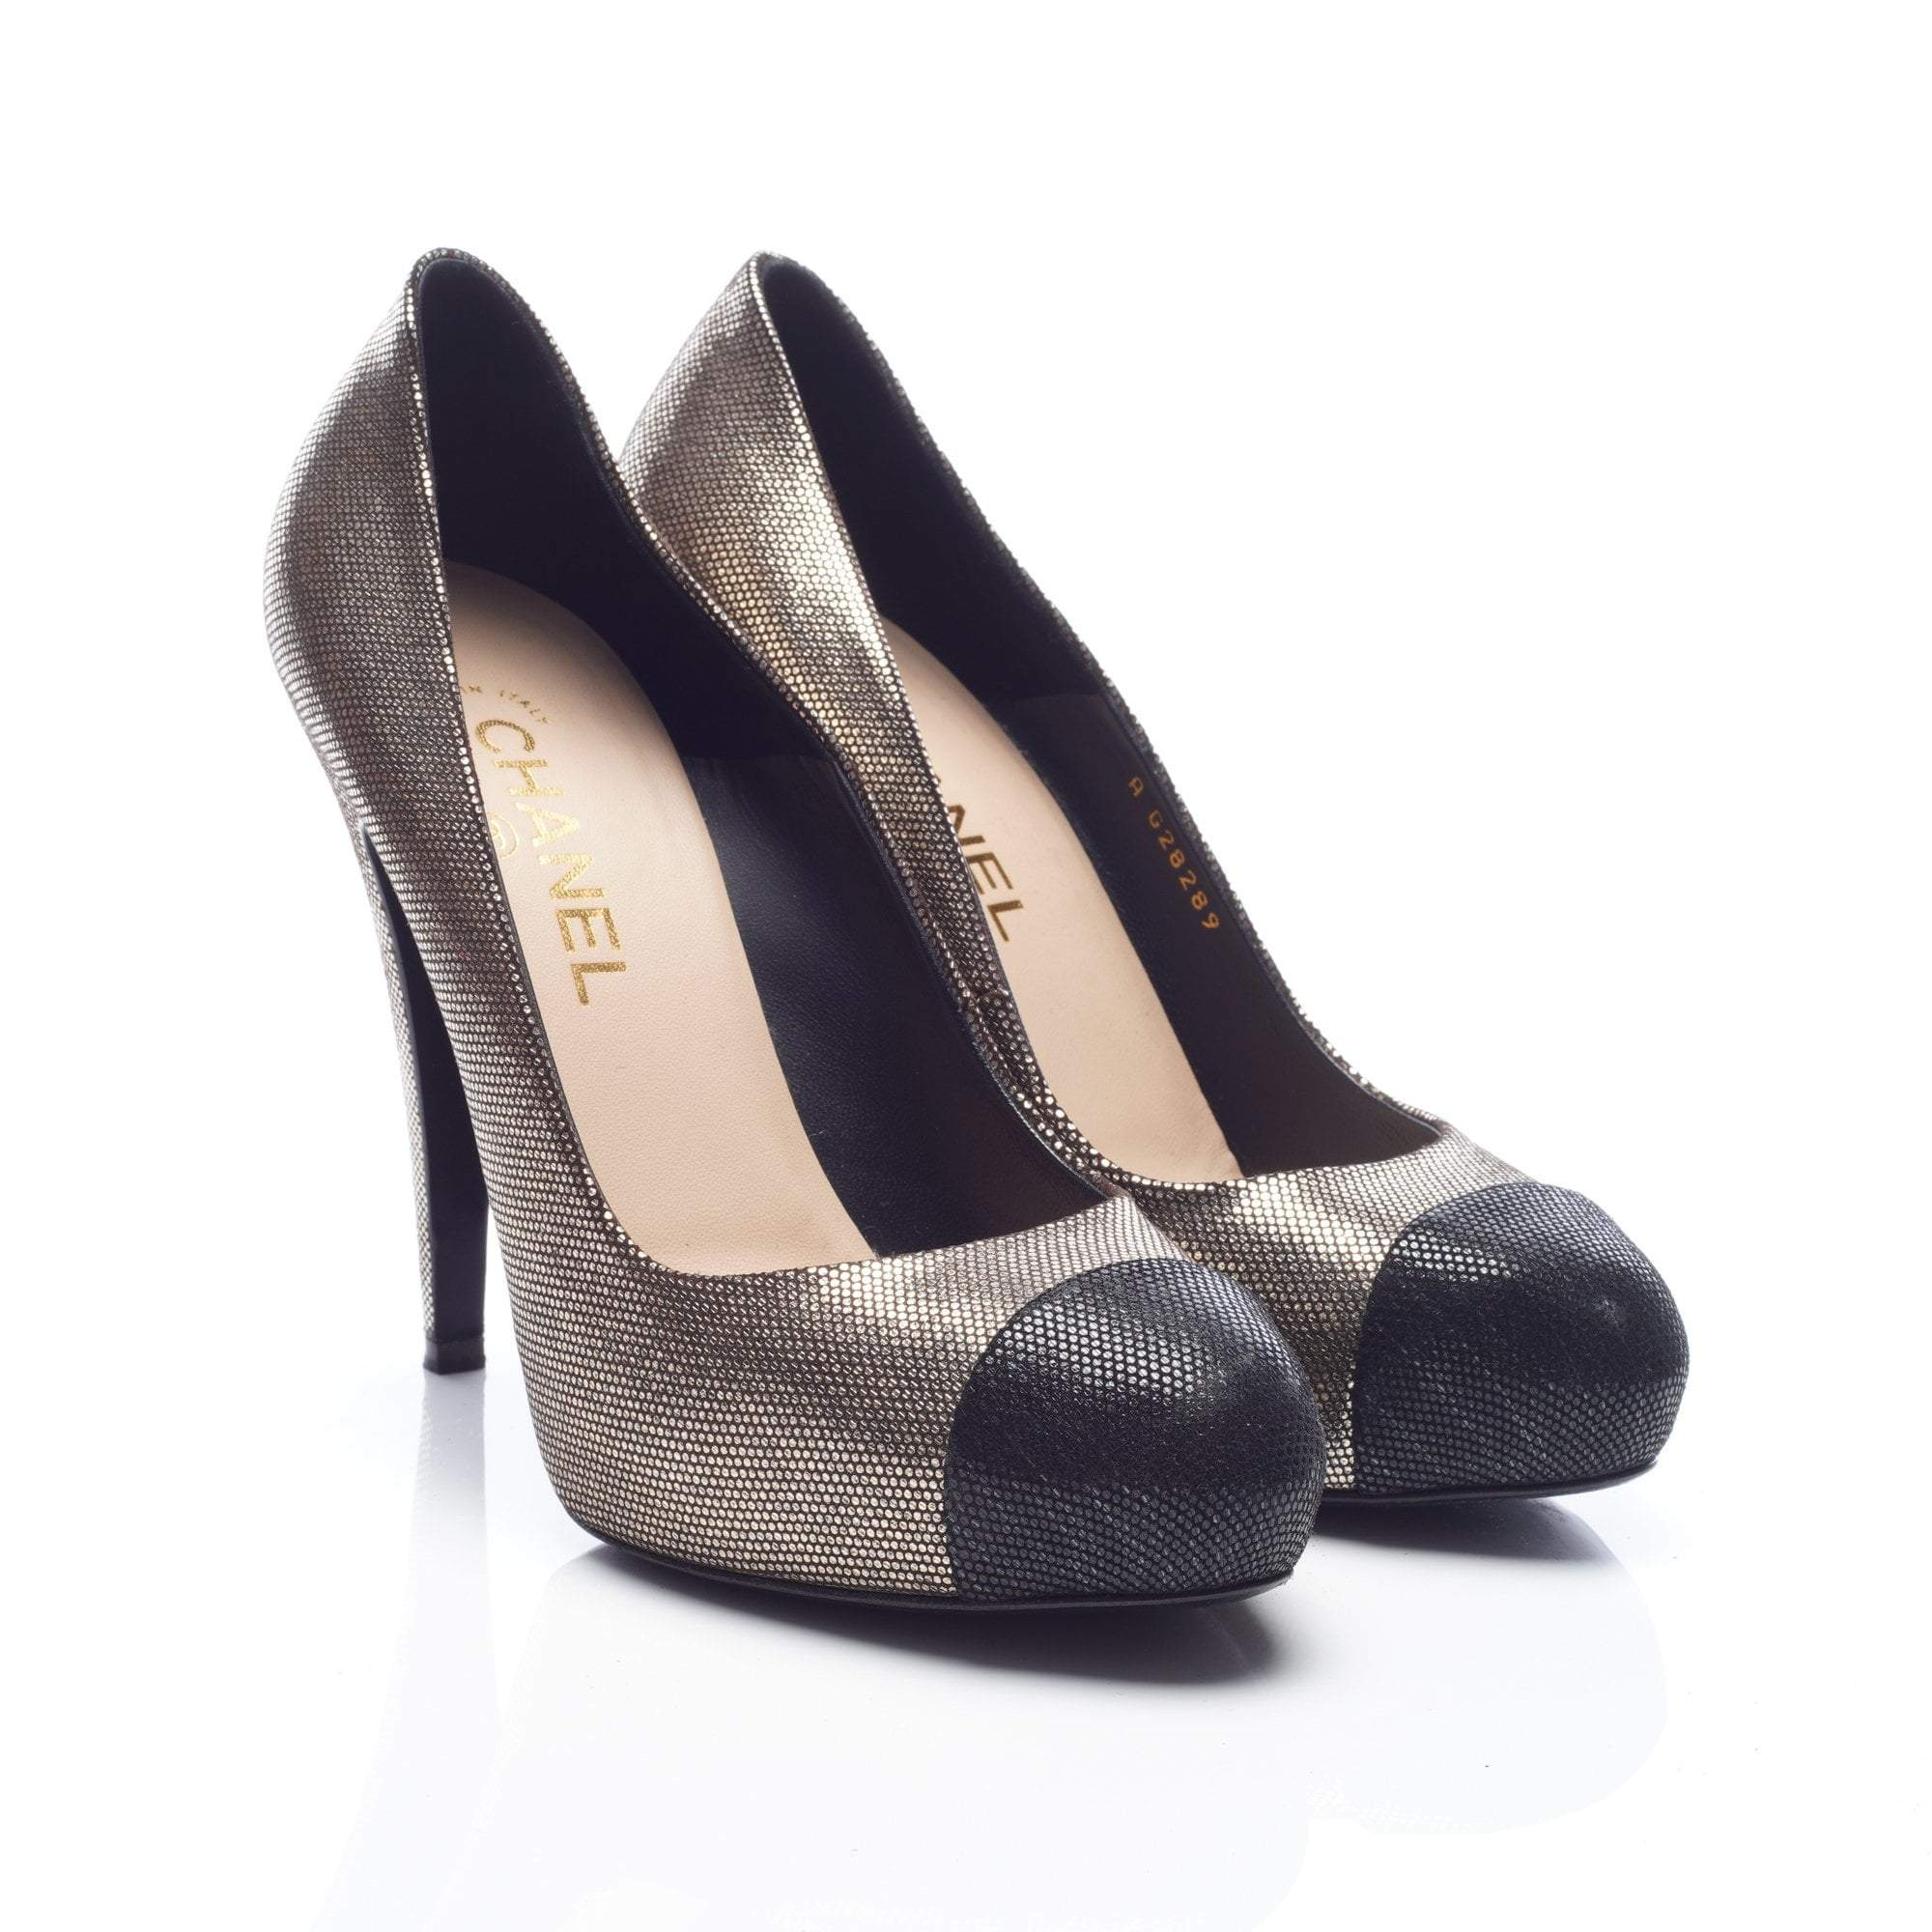 Chanel Gold and Black Cap Toe Shimmery Pumps